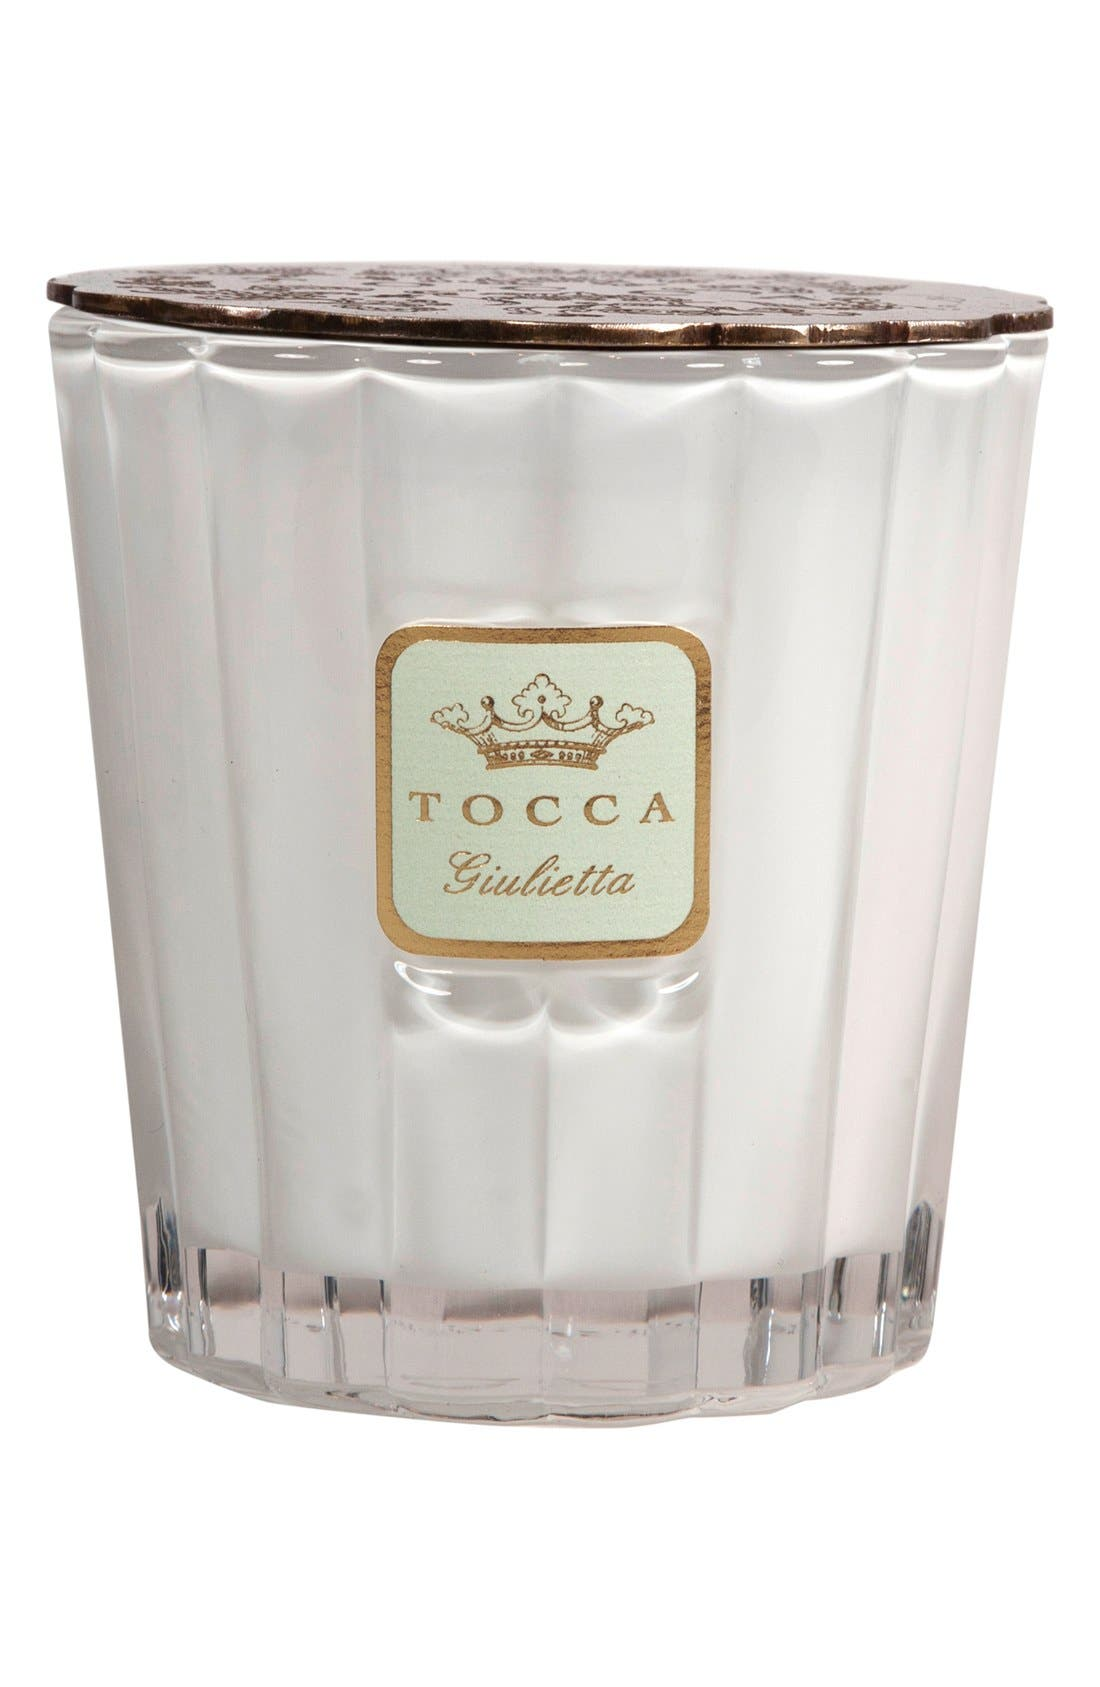 TOCCA Candela Luxe Candle